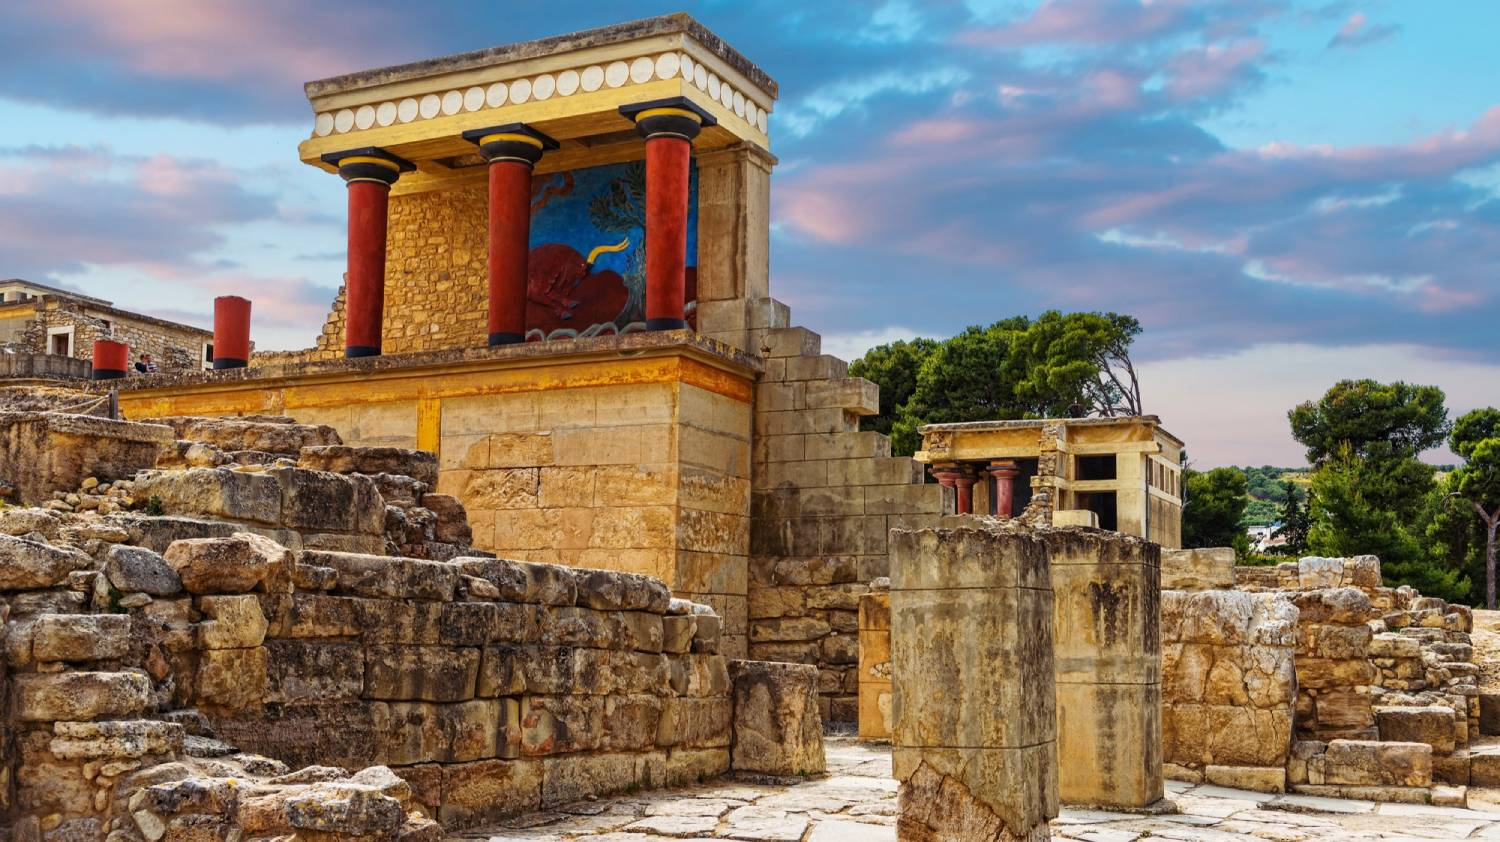 Palace of Knossos - Things To Do In Crete